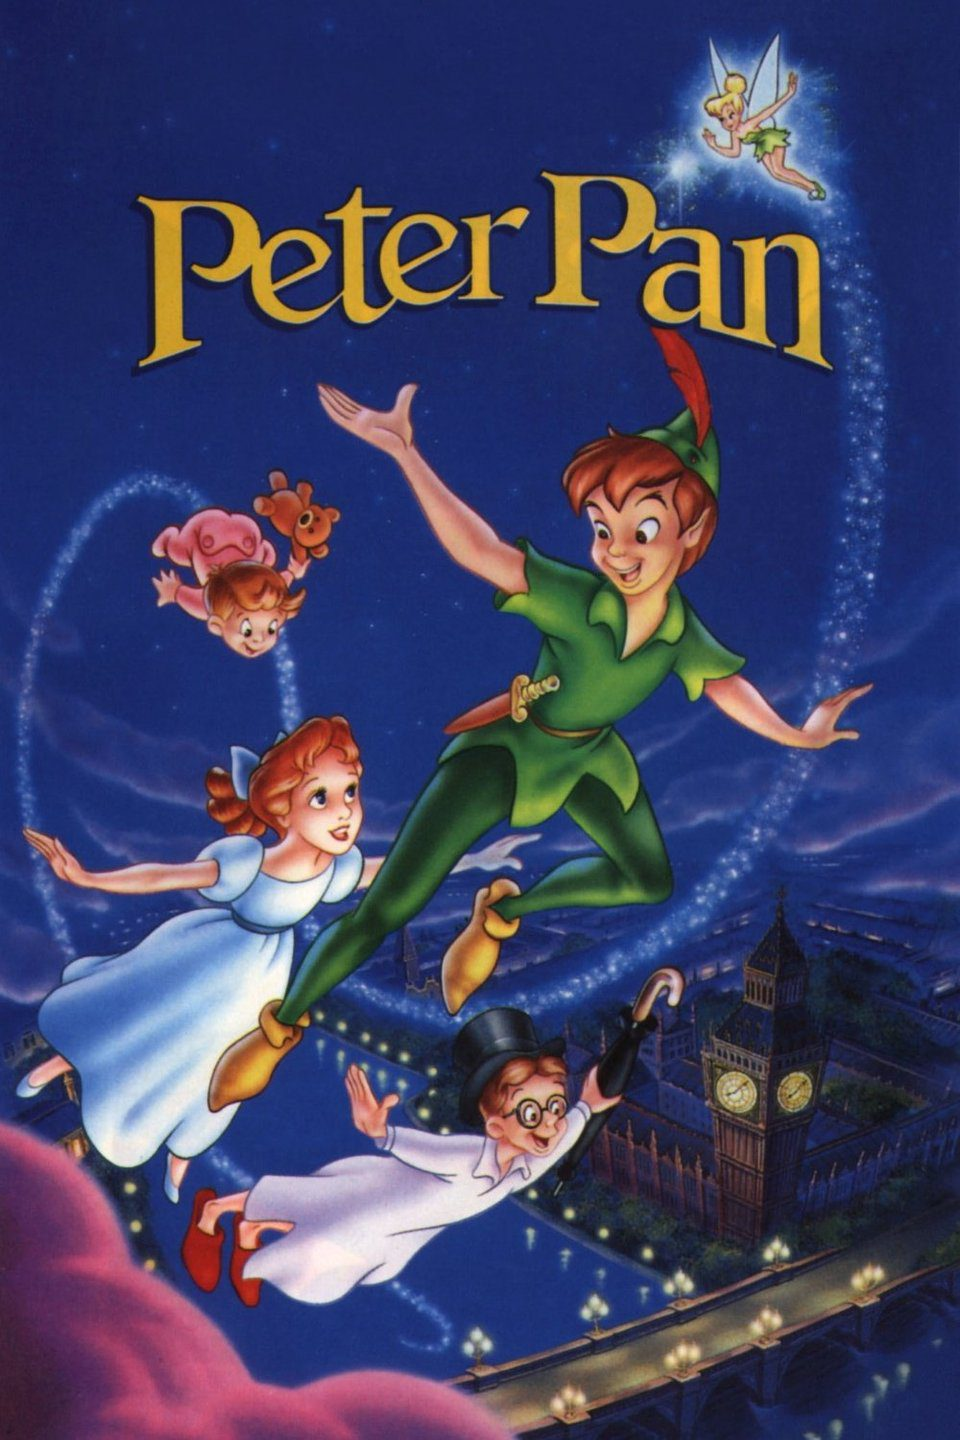 Cartel Estados Unidos de 'Peter Pan'